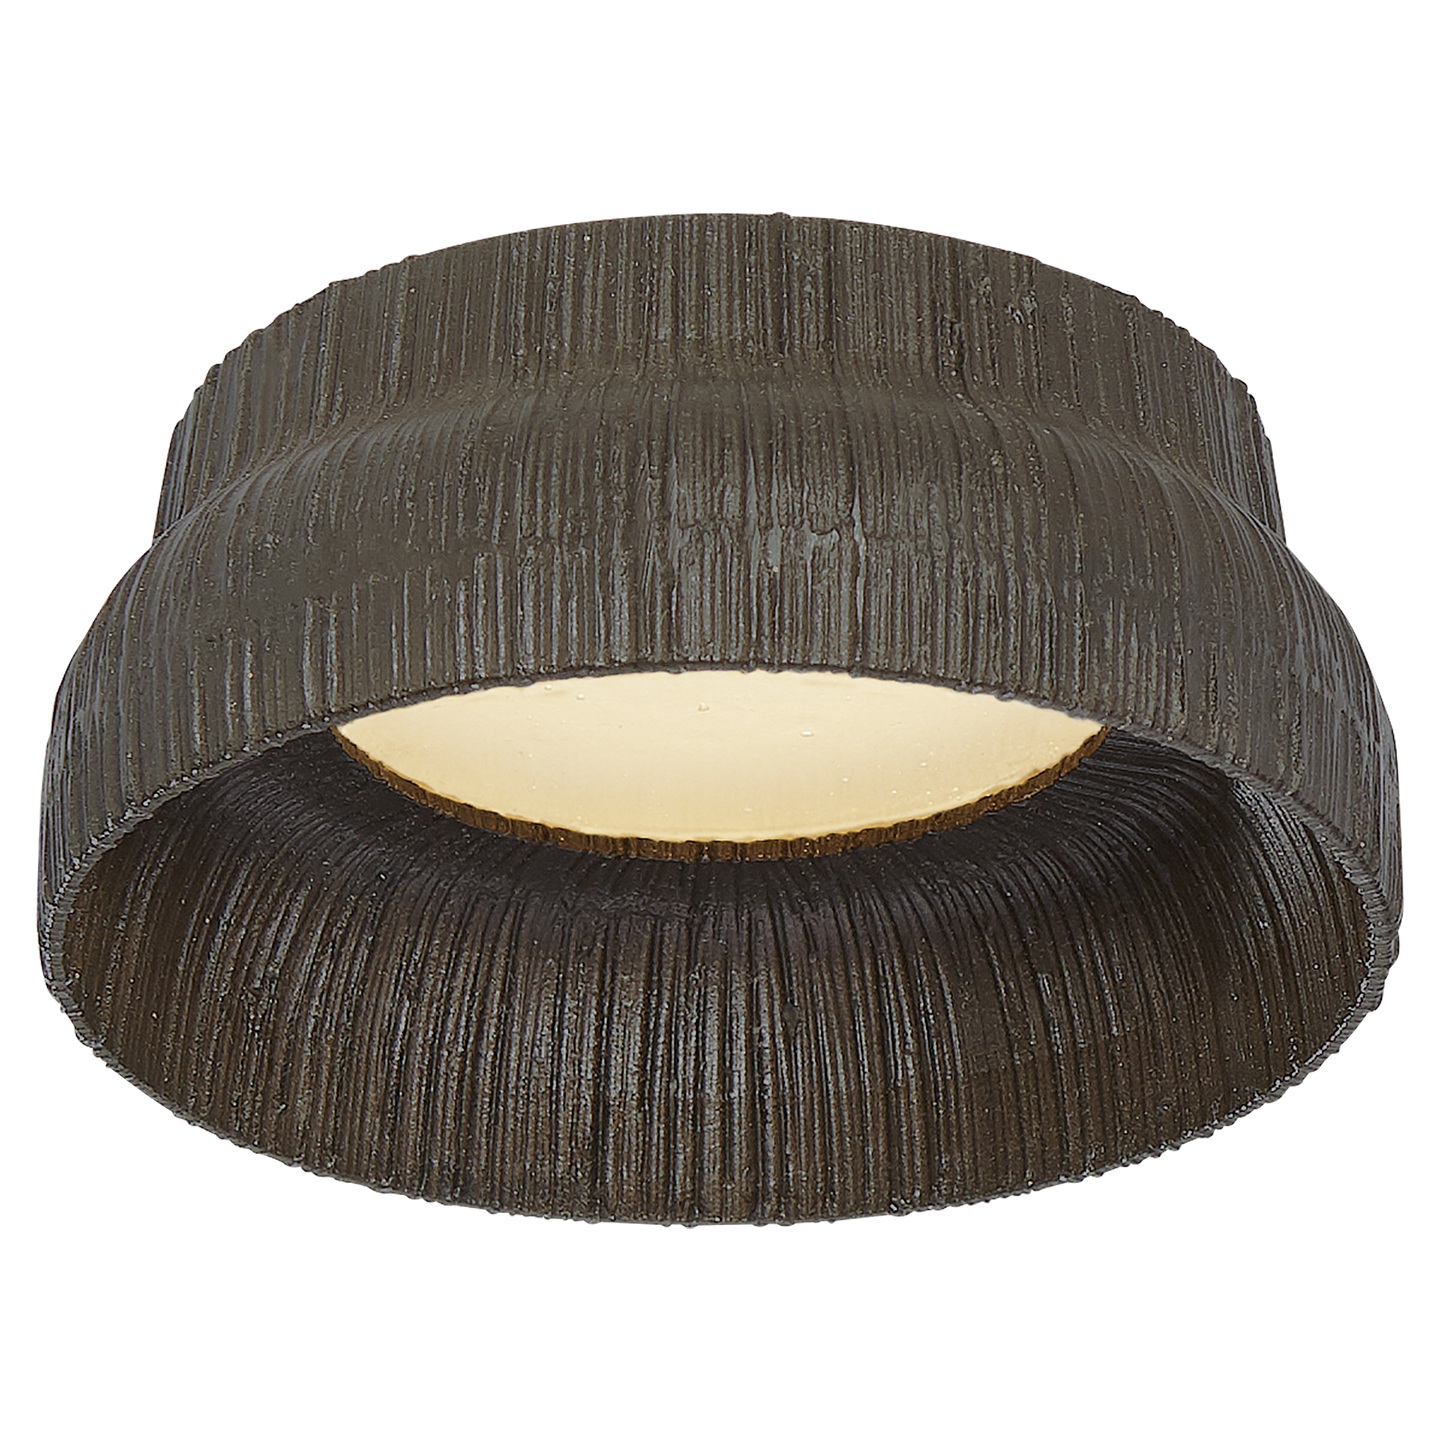 Kelly Wearstler S New Collection Brings Modern Comfort To: Utopia Petite Flush Mount